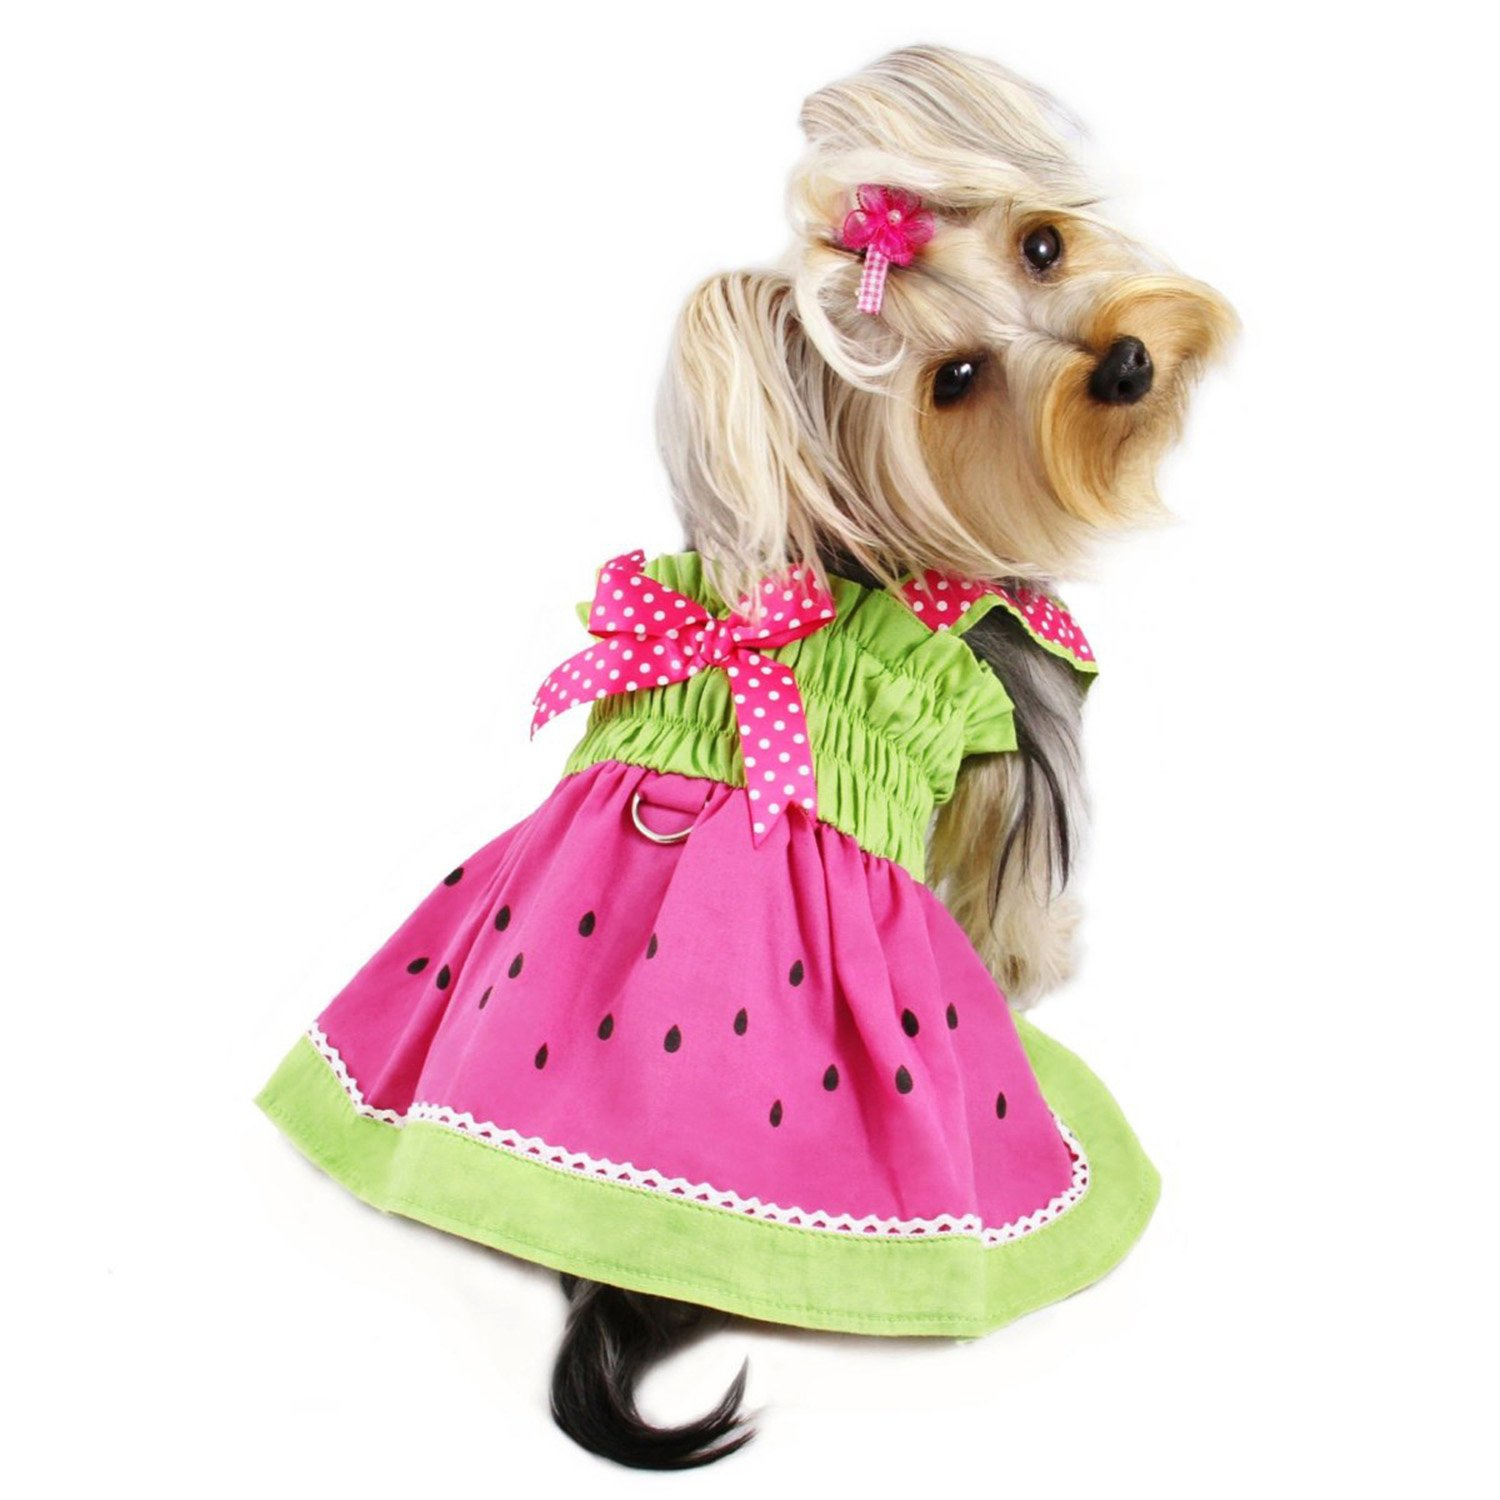 Juicy Watermelon Dog Sundress with Large D-ring for Easy Leash Attachment Sizes: X-Large